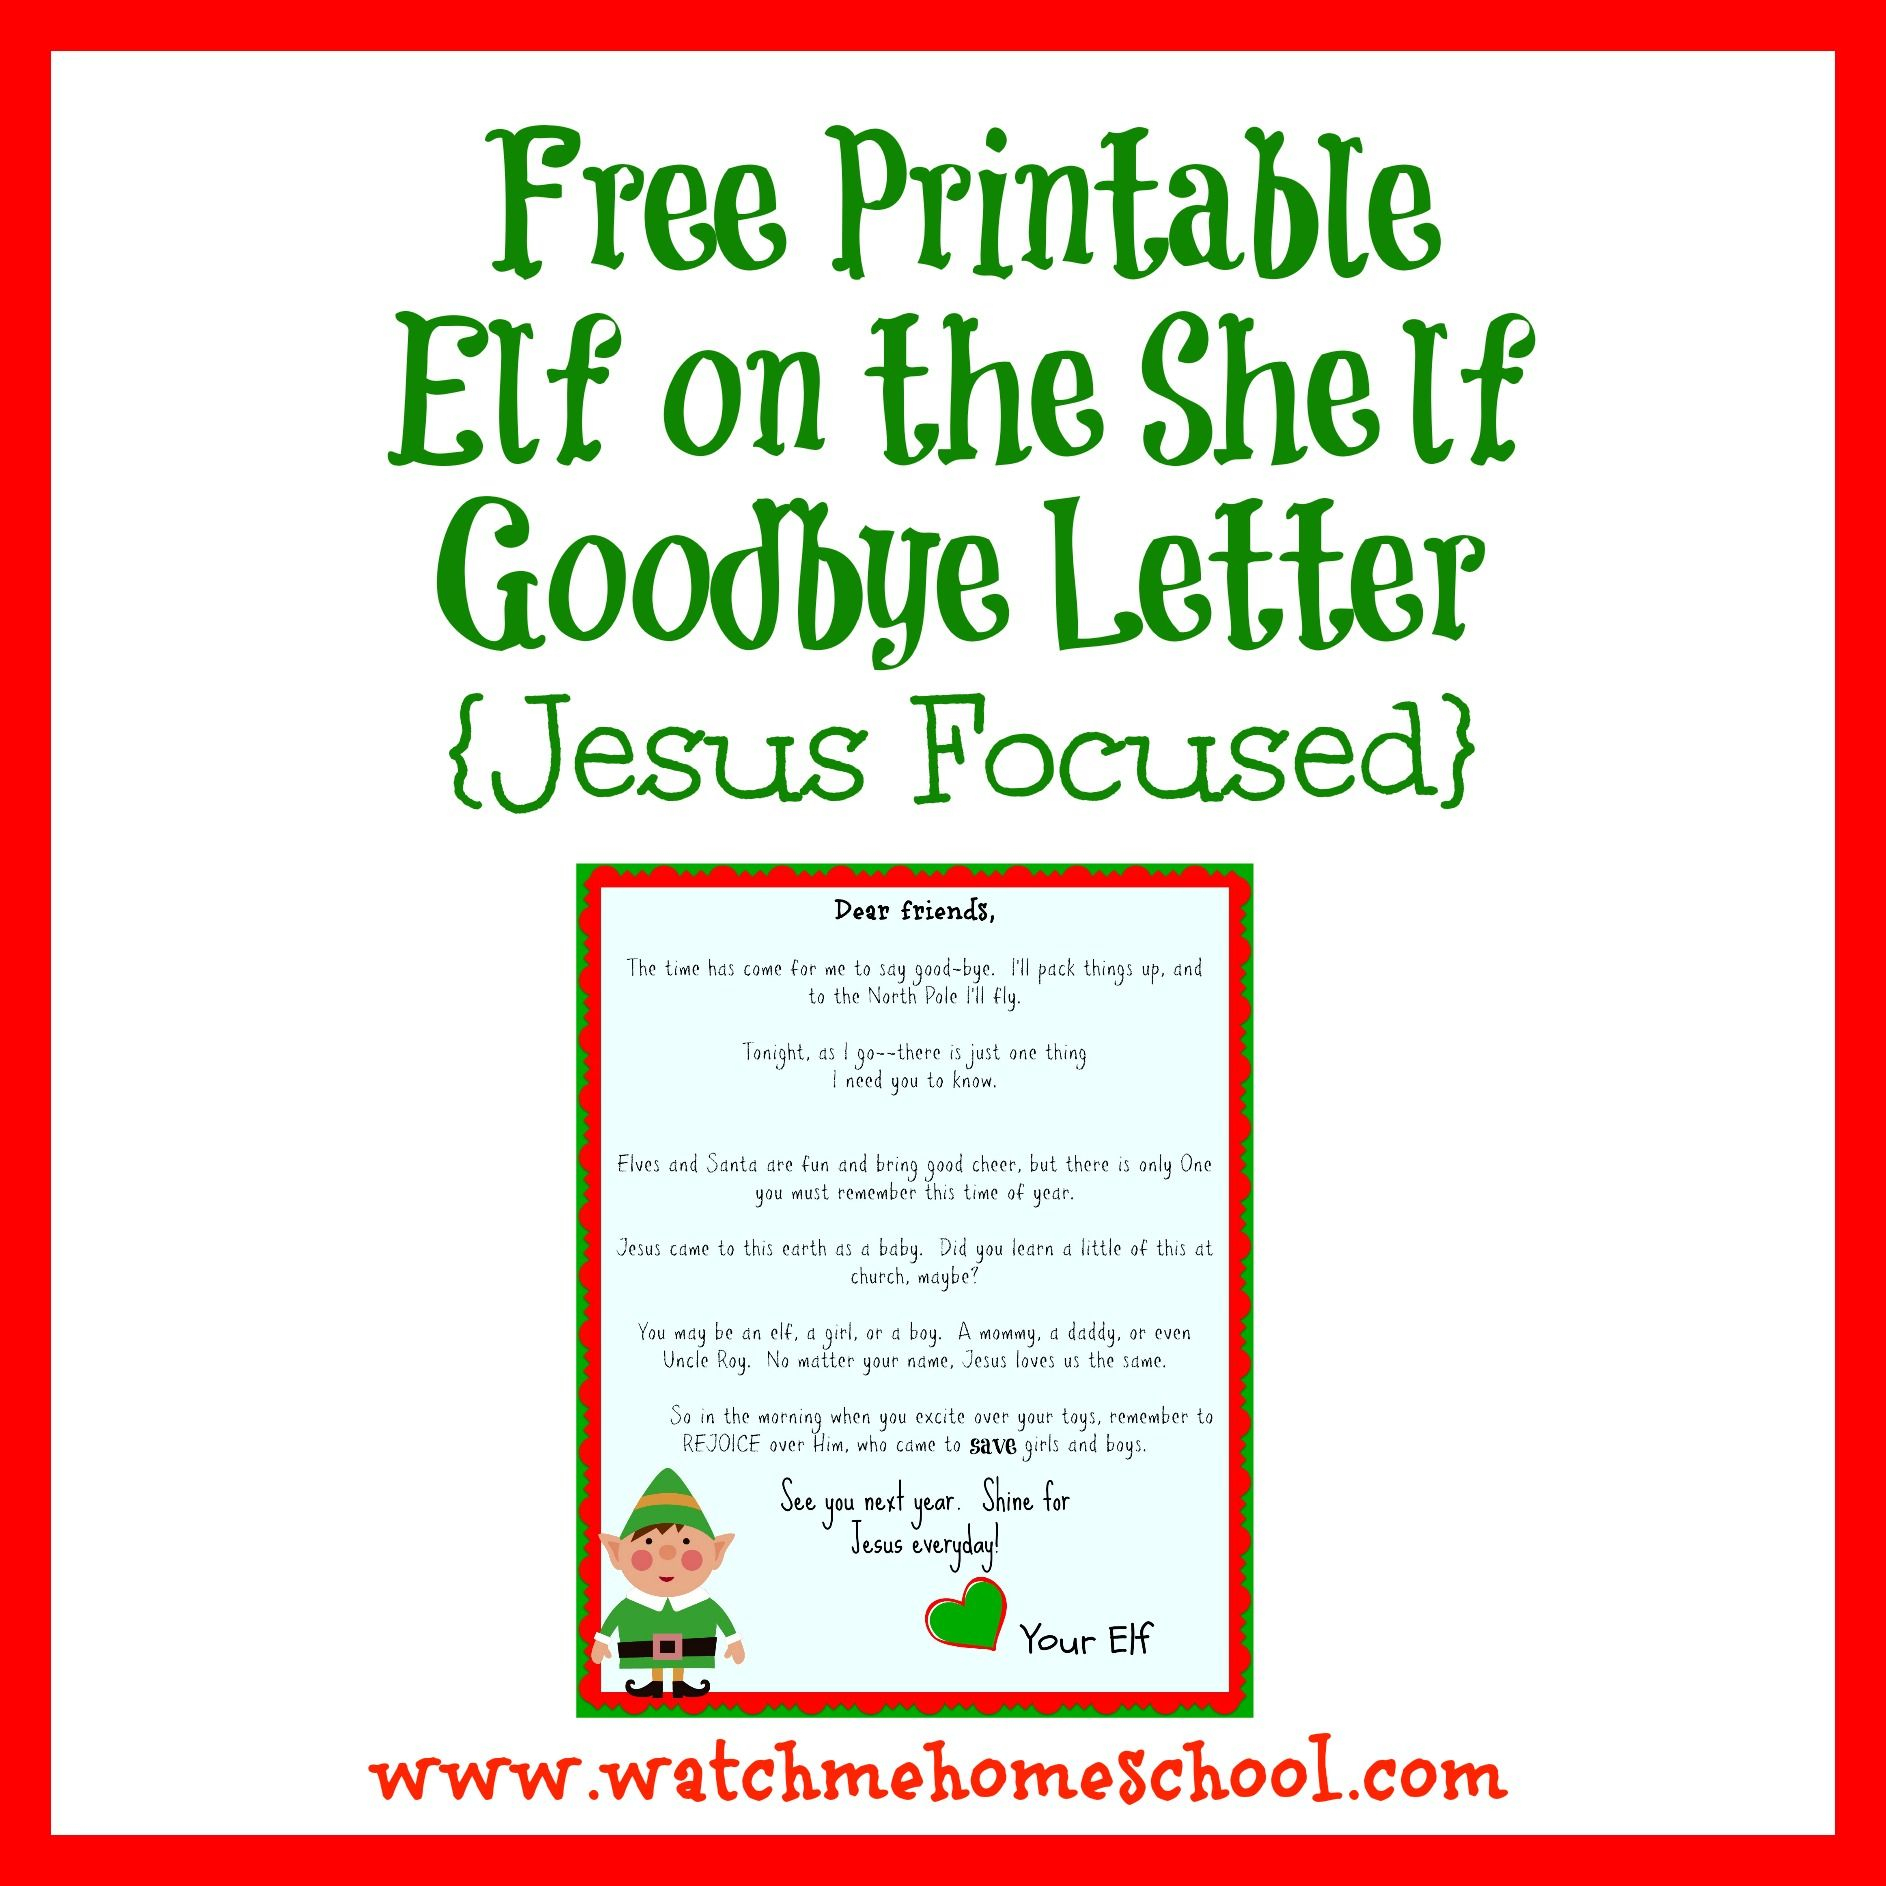 Elf On The Shelf Farewell Letter Printable | Elf On The Shelf - Elf On The Shelf Goodbye Letter Free Printable